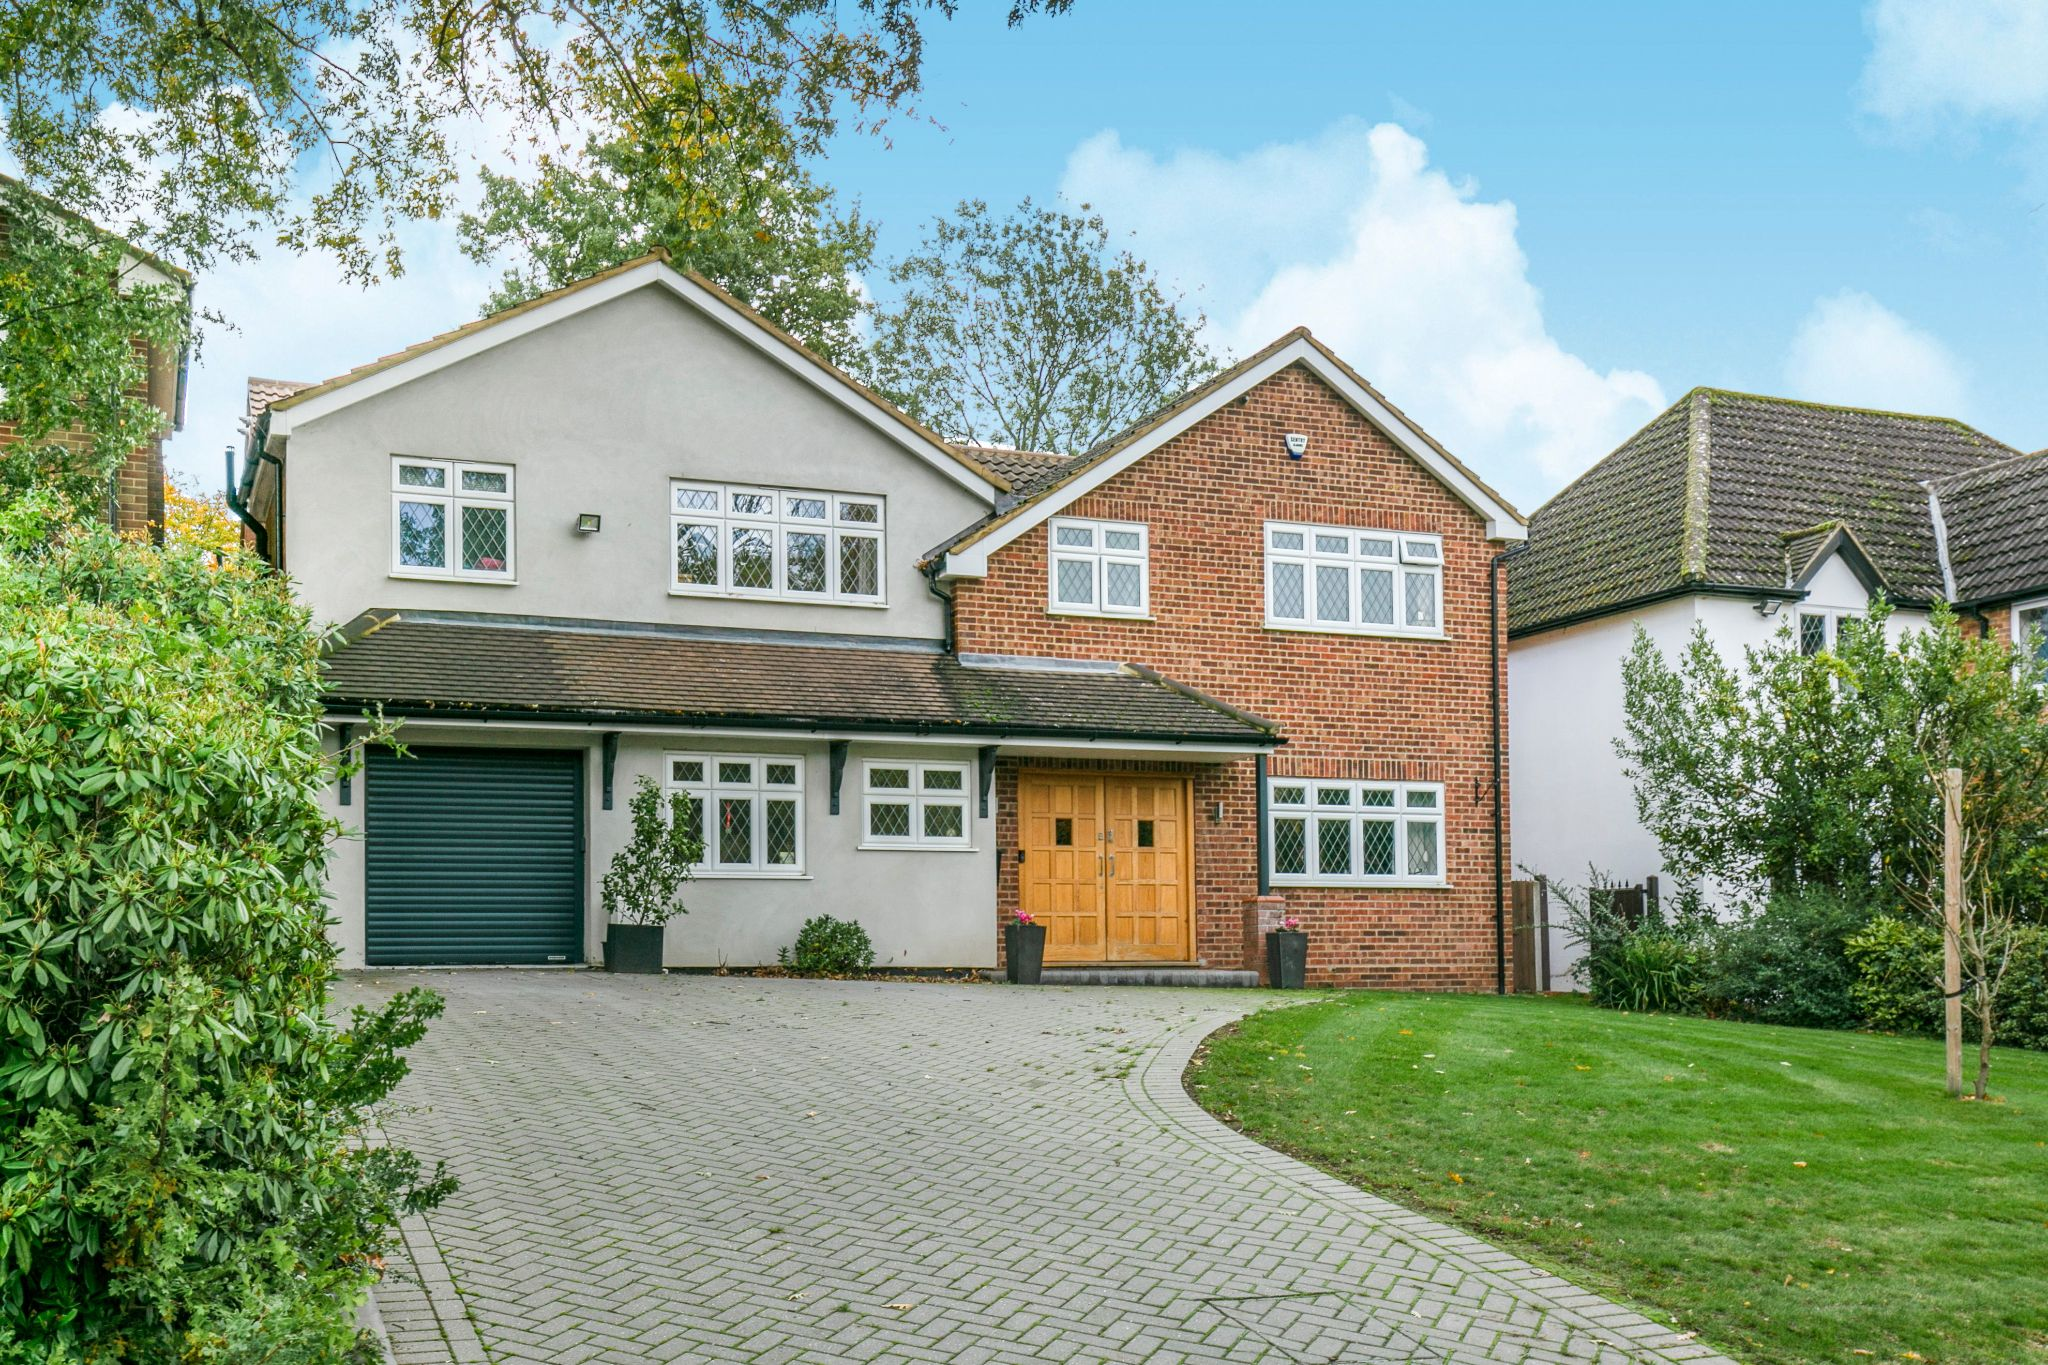 5 bedroom detached house For Sale in Hatfield - Property photograph